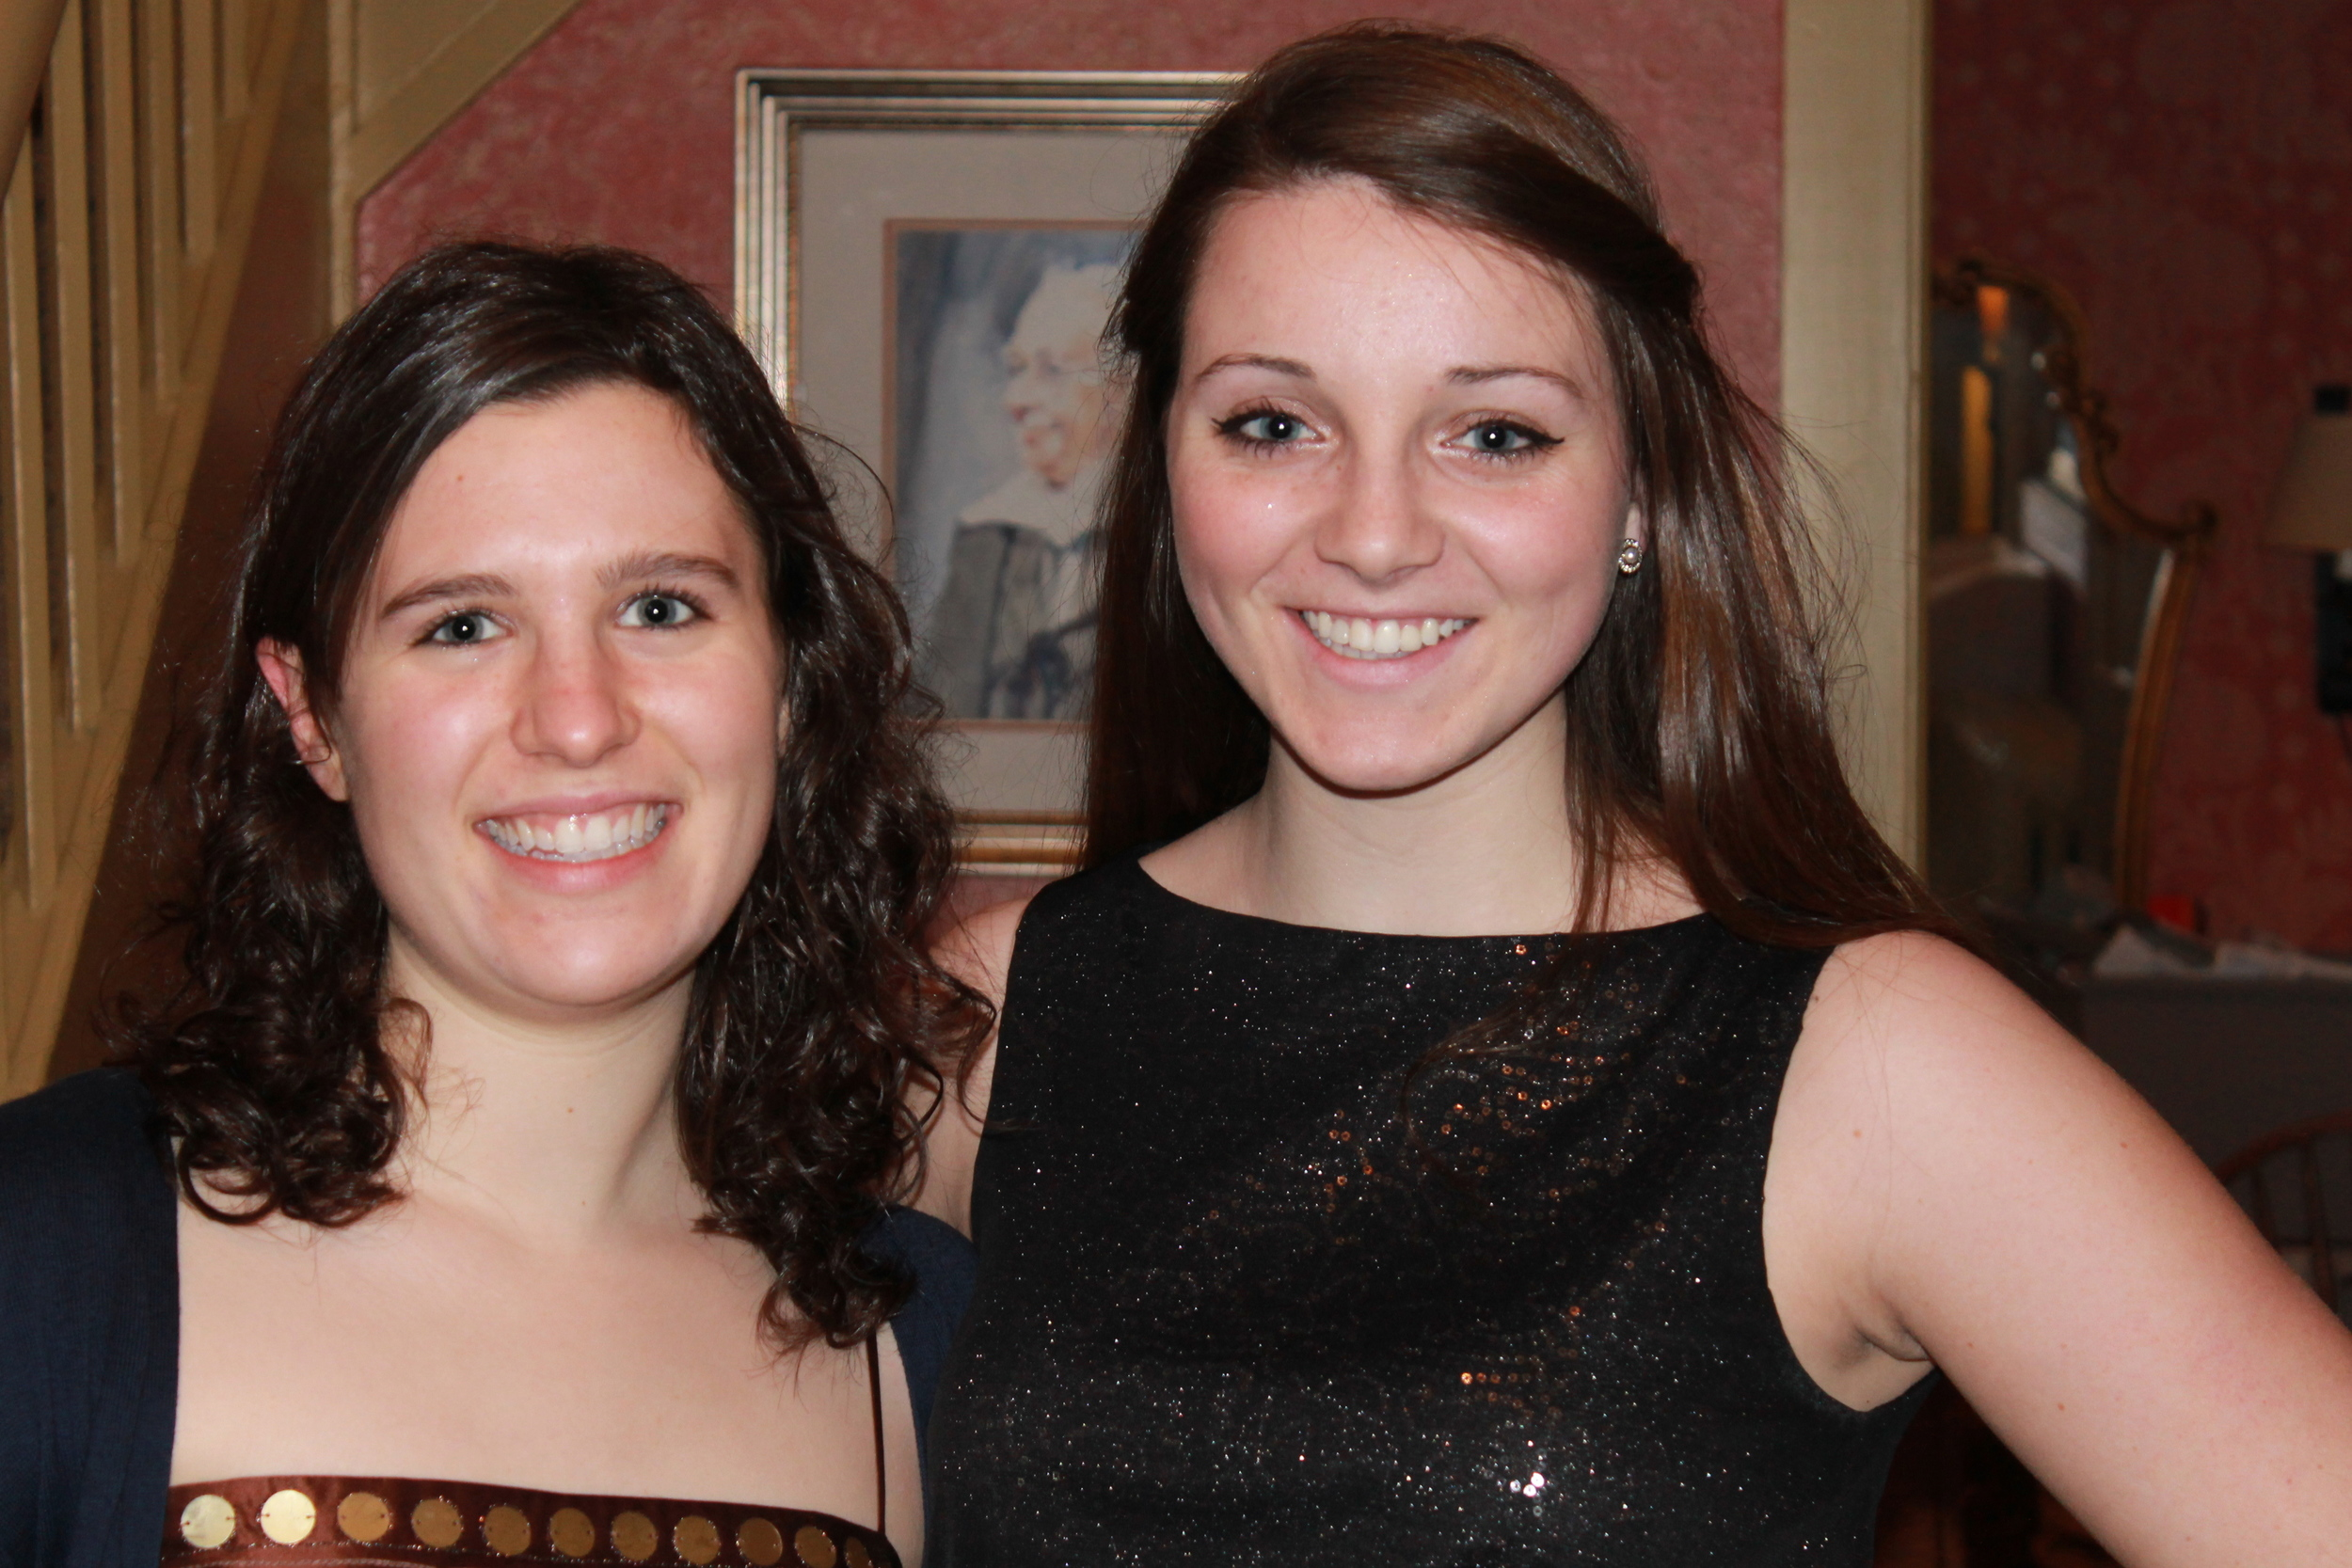 From left: Sarah Mandel '15 and unnamed